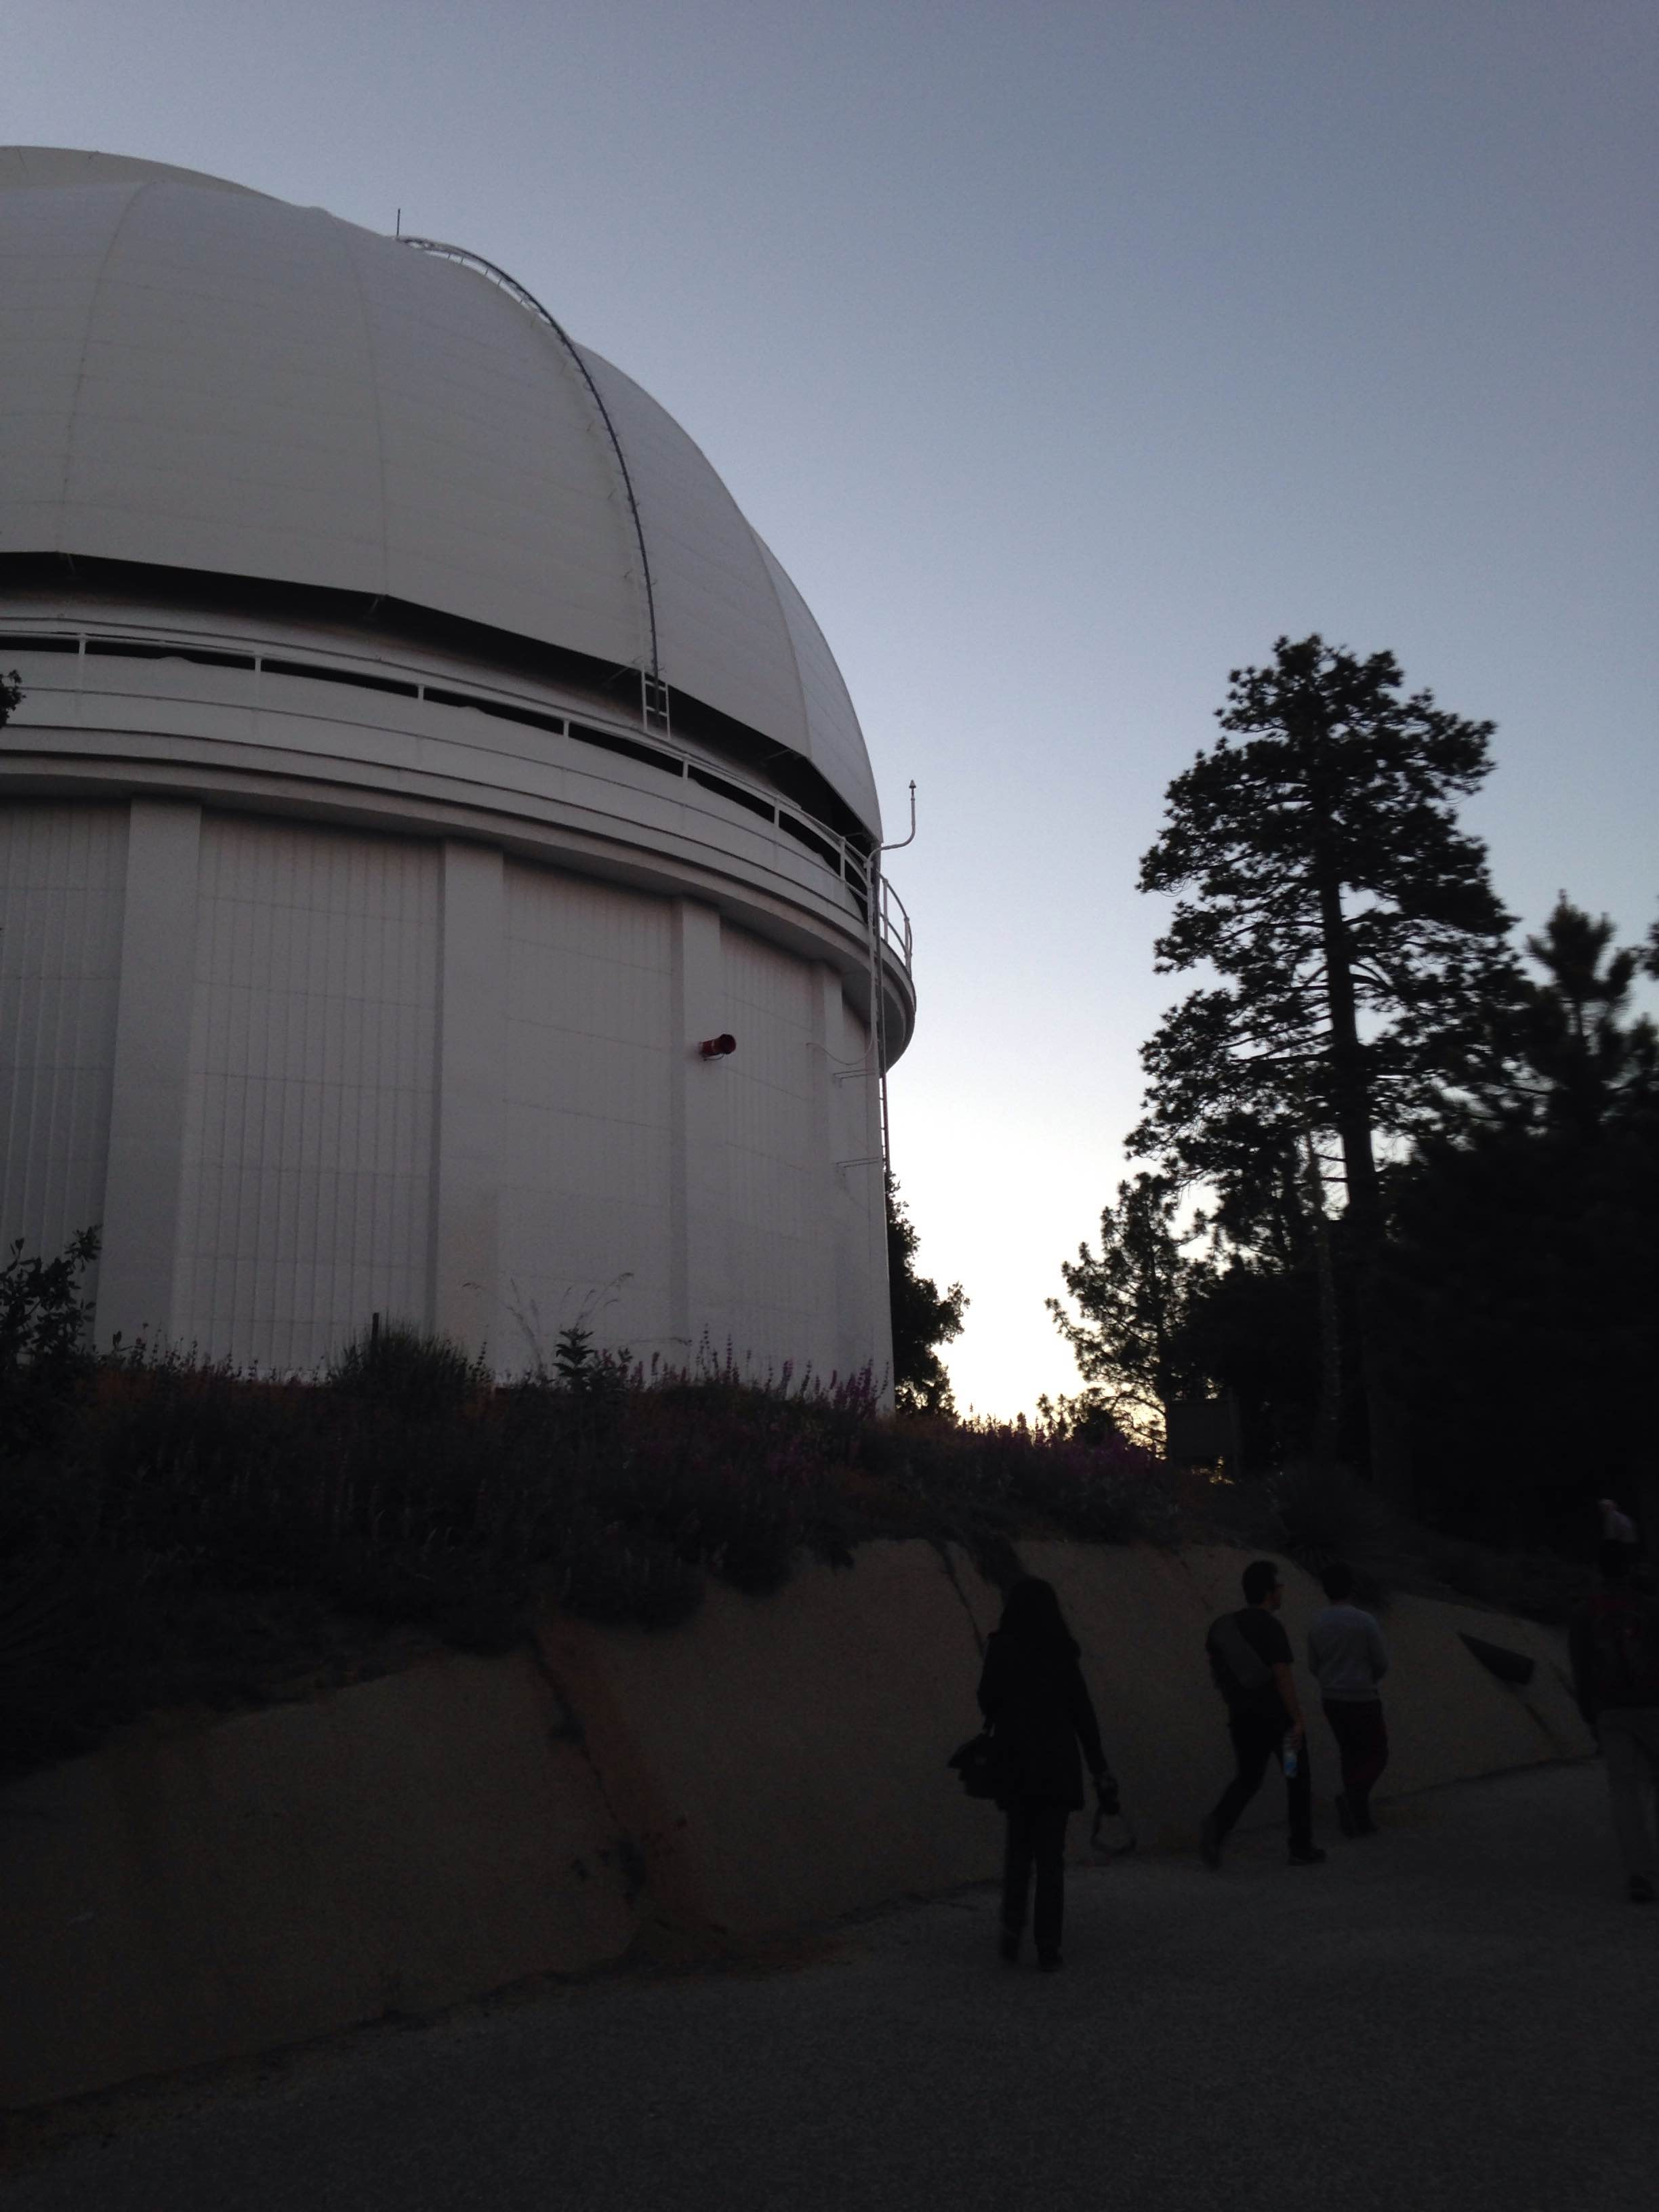 Mt Wilson 12 - going up to the 60-inch